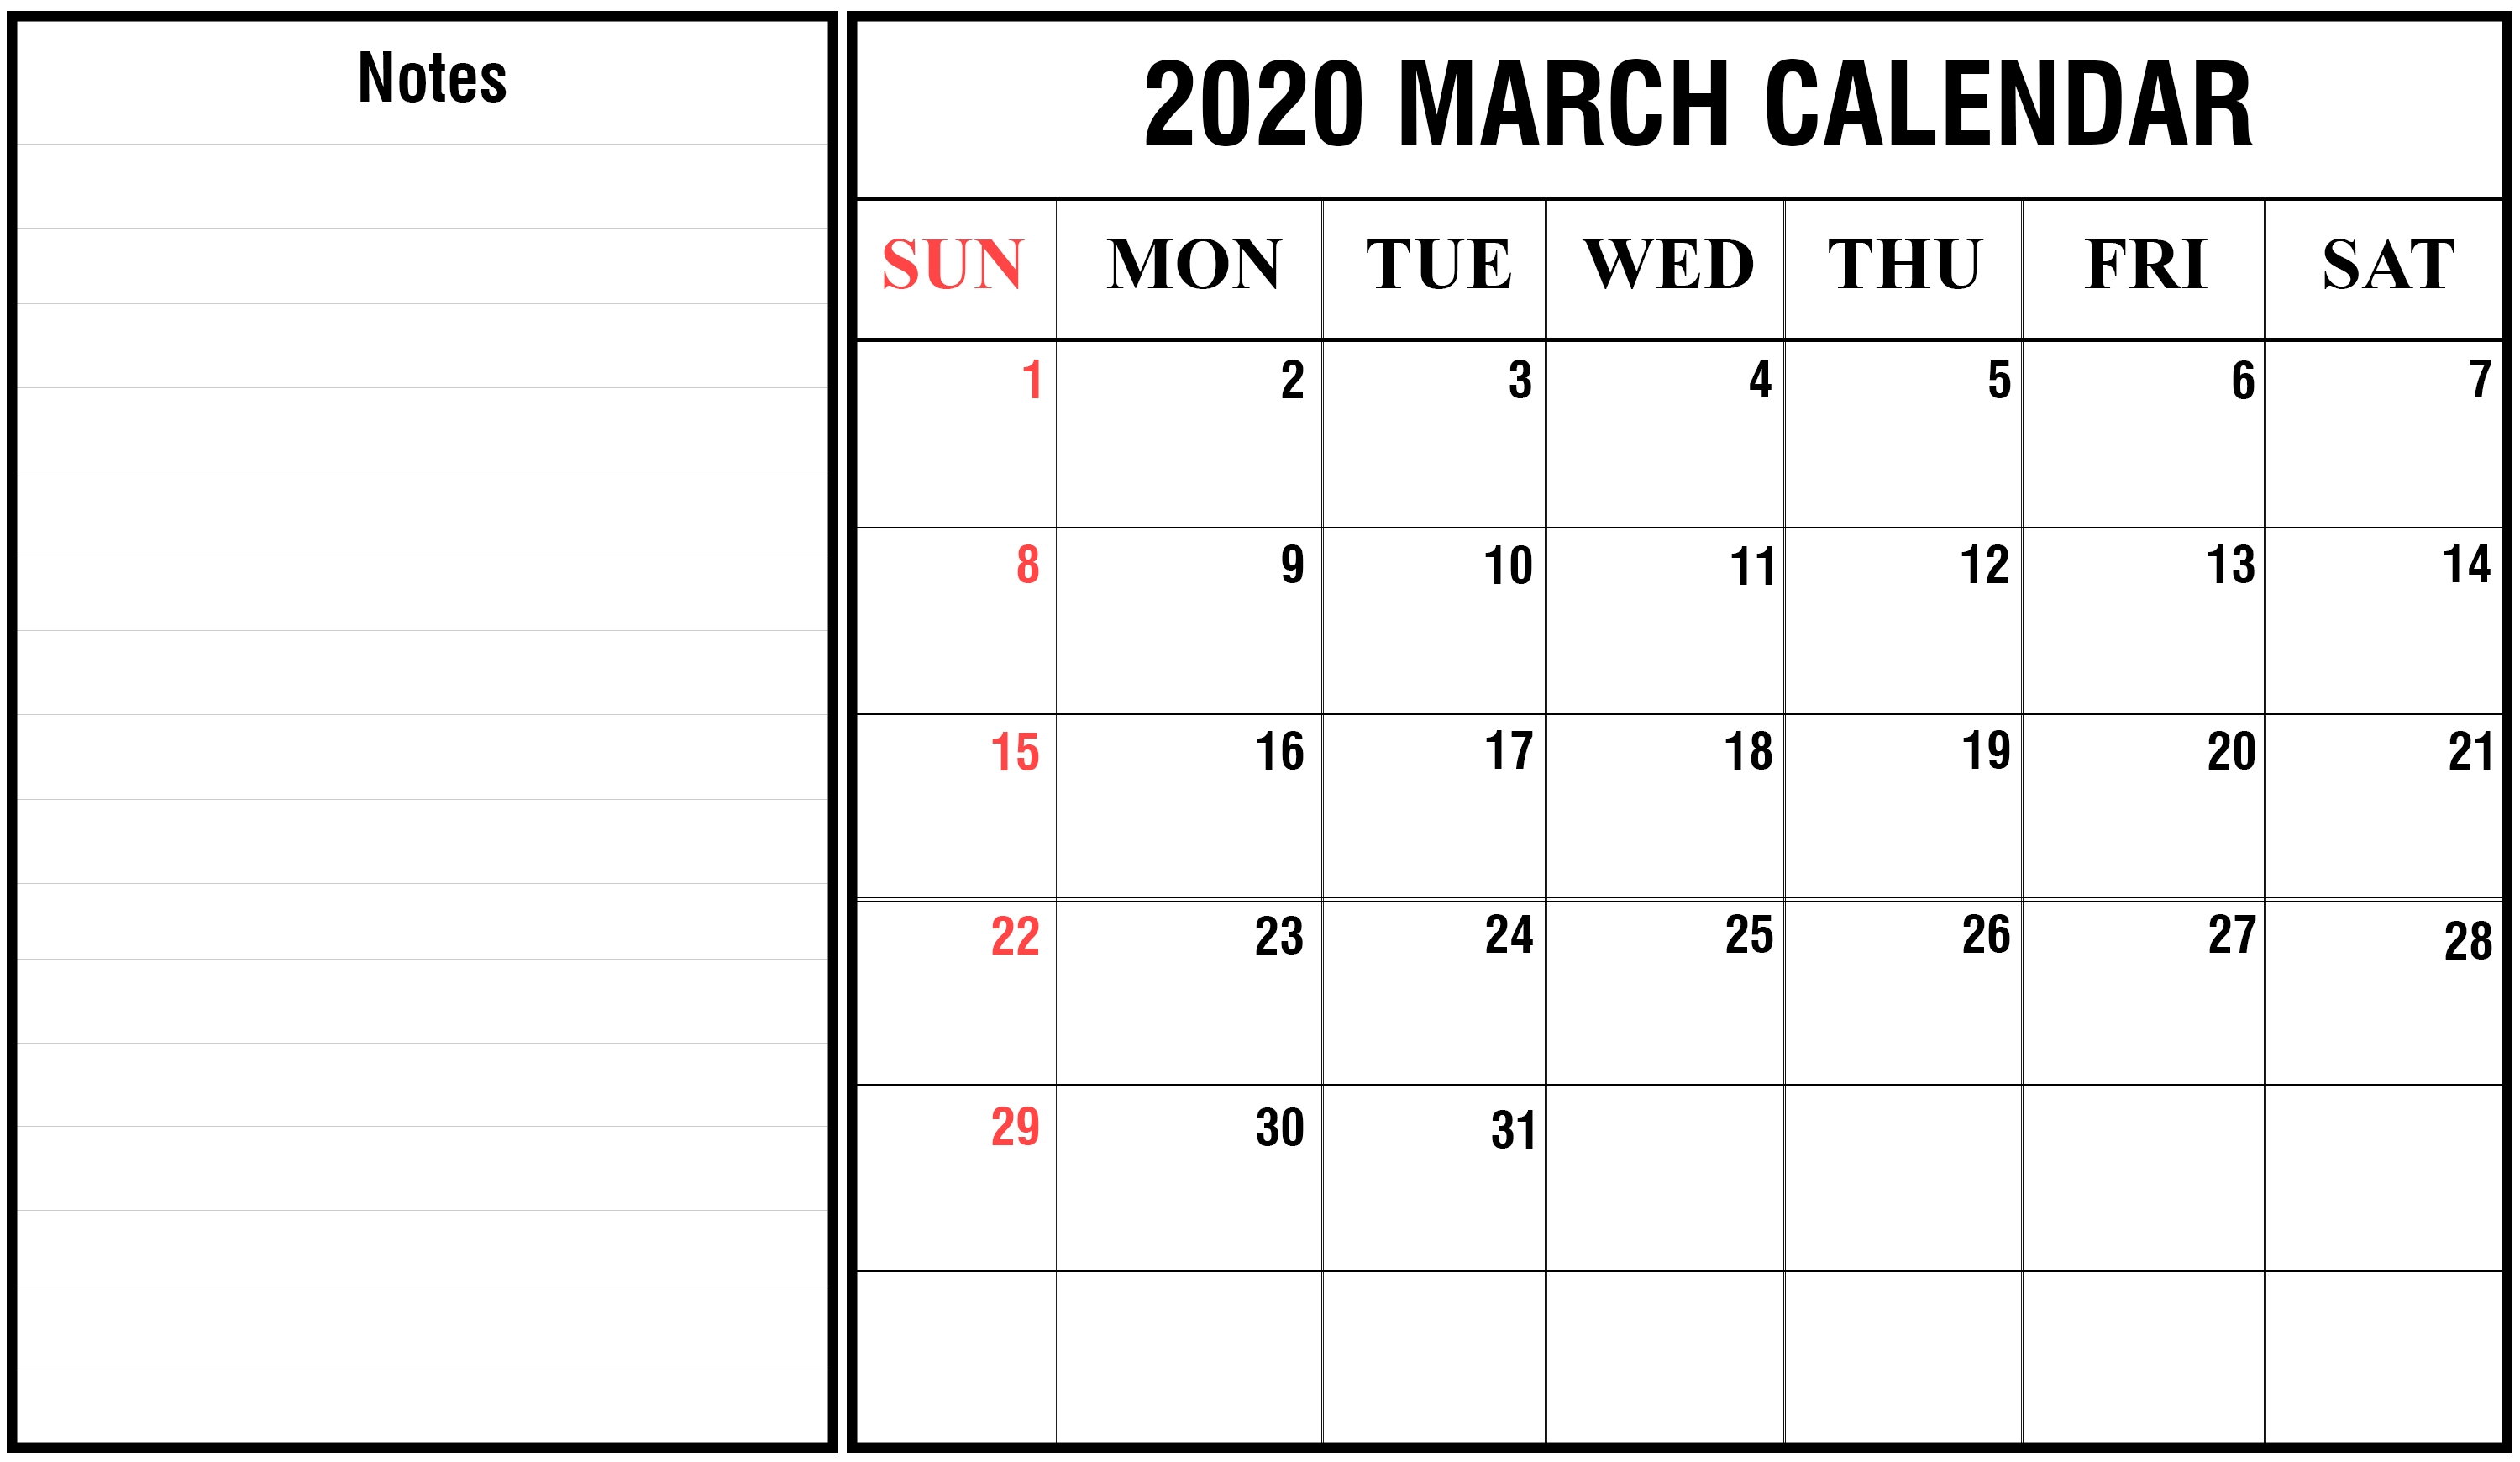 Free 2020 March Calendar Printable Editable Template Blank  Free Editable 2020 Monthly Calendars With Notes